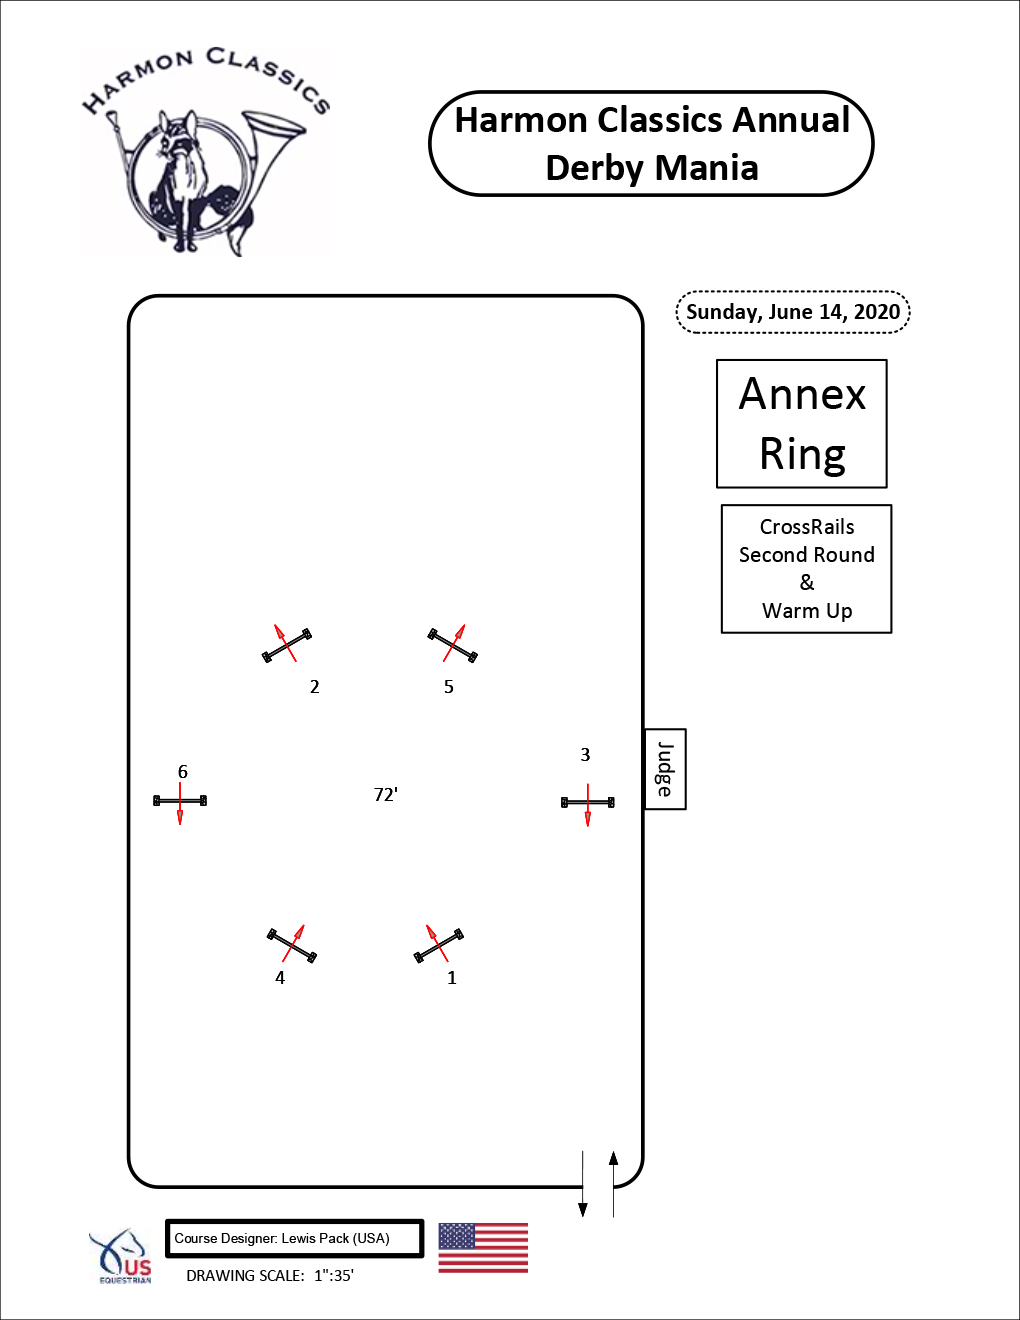 Annex-Ring-Sunday6-14-Crossrails-Warm-Up-and-Second-Round-Harmon-Classics-Derby-Mania